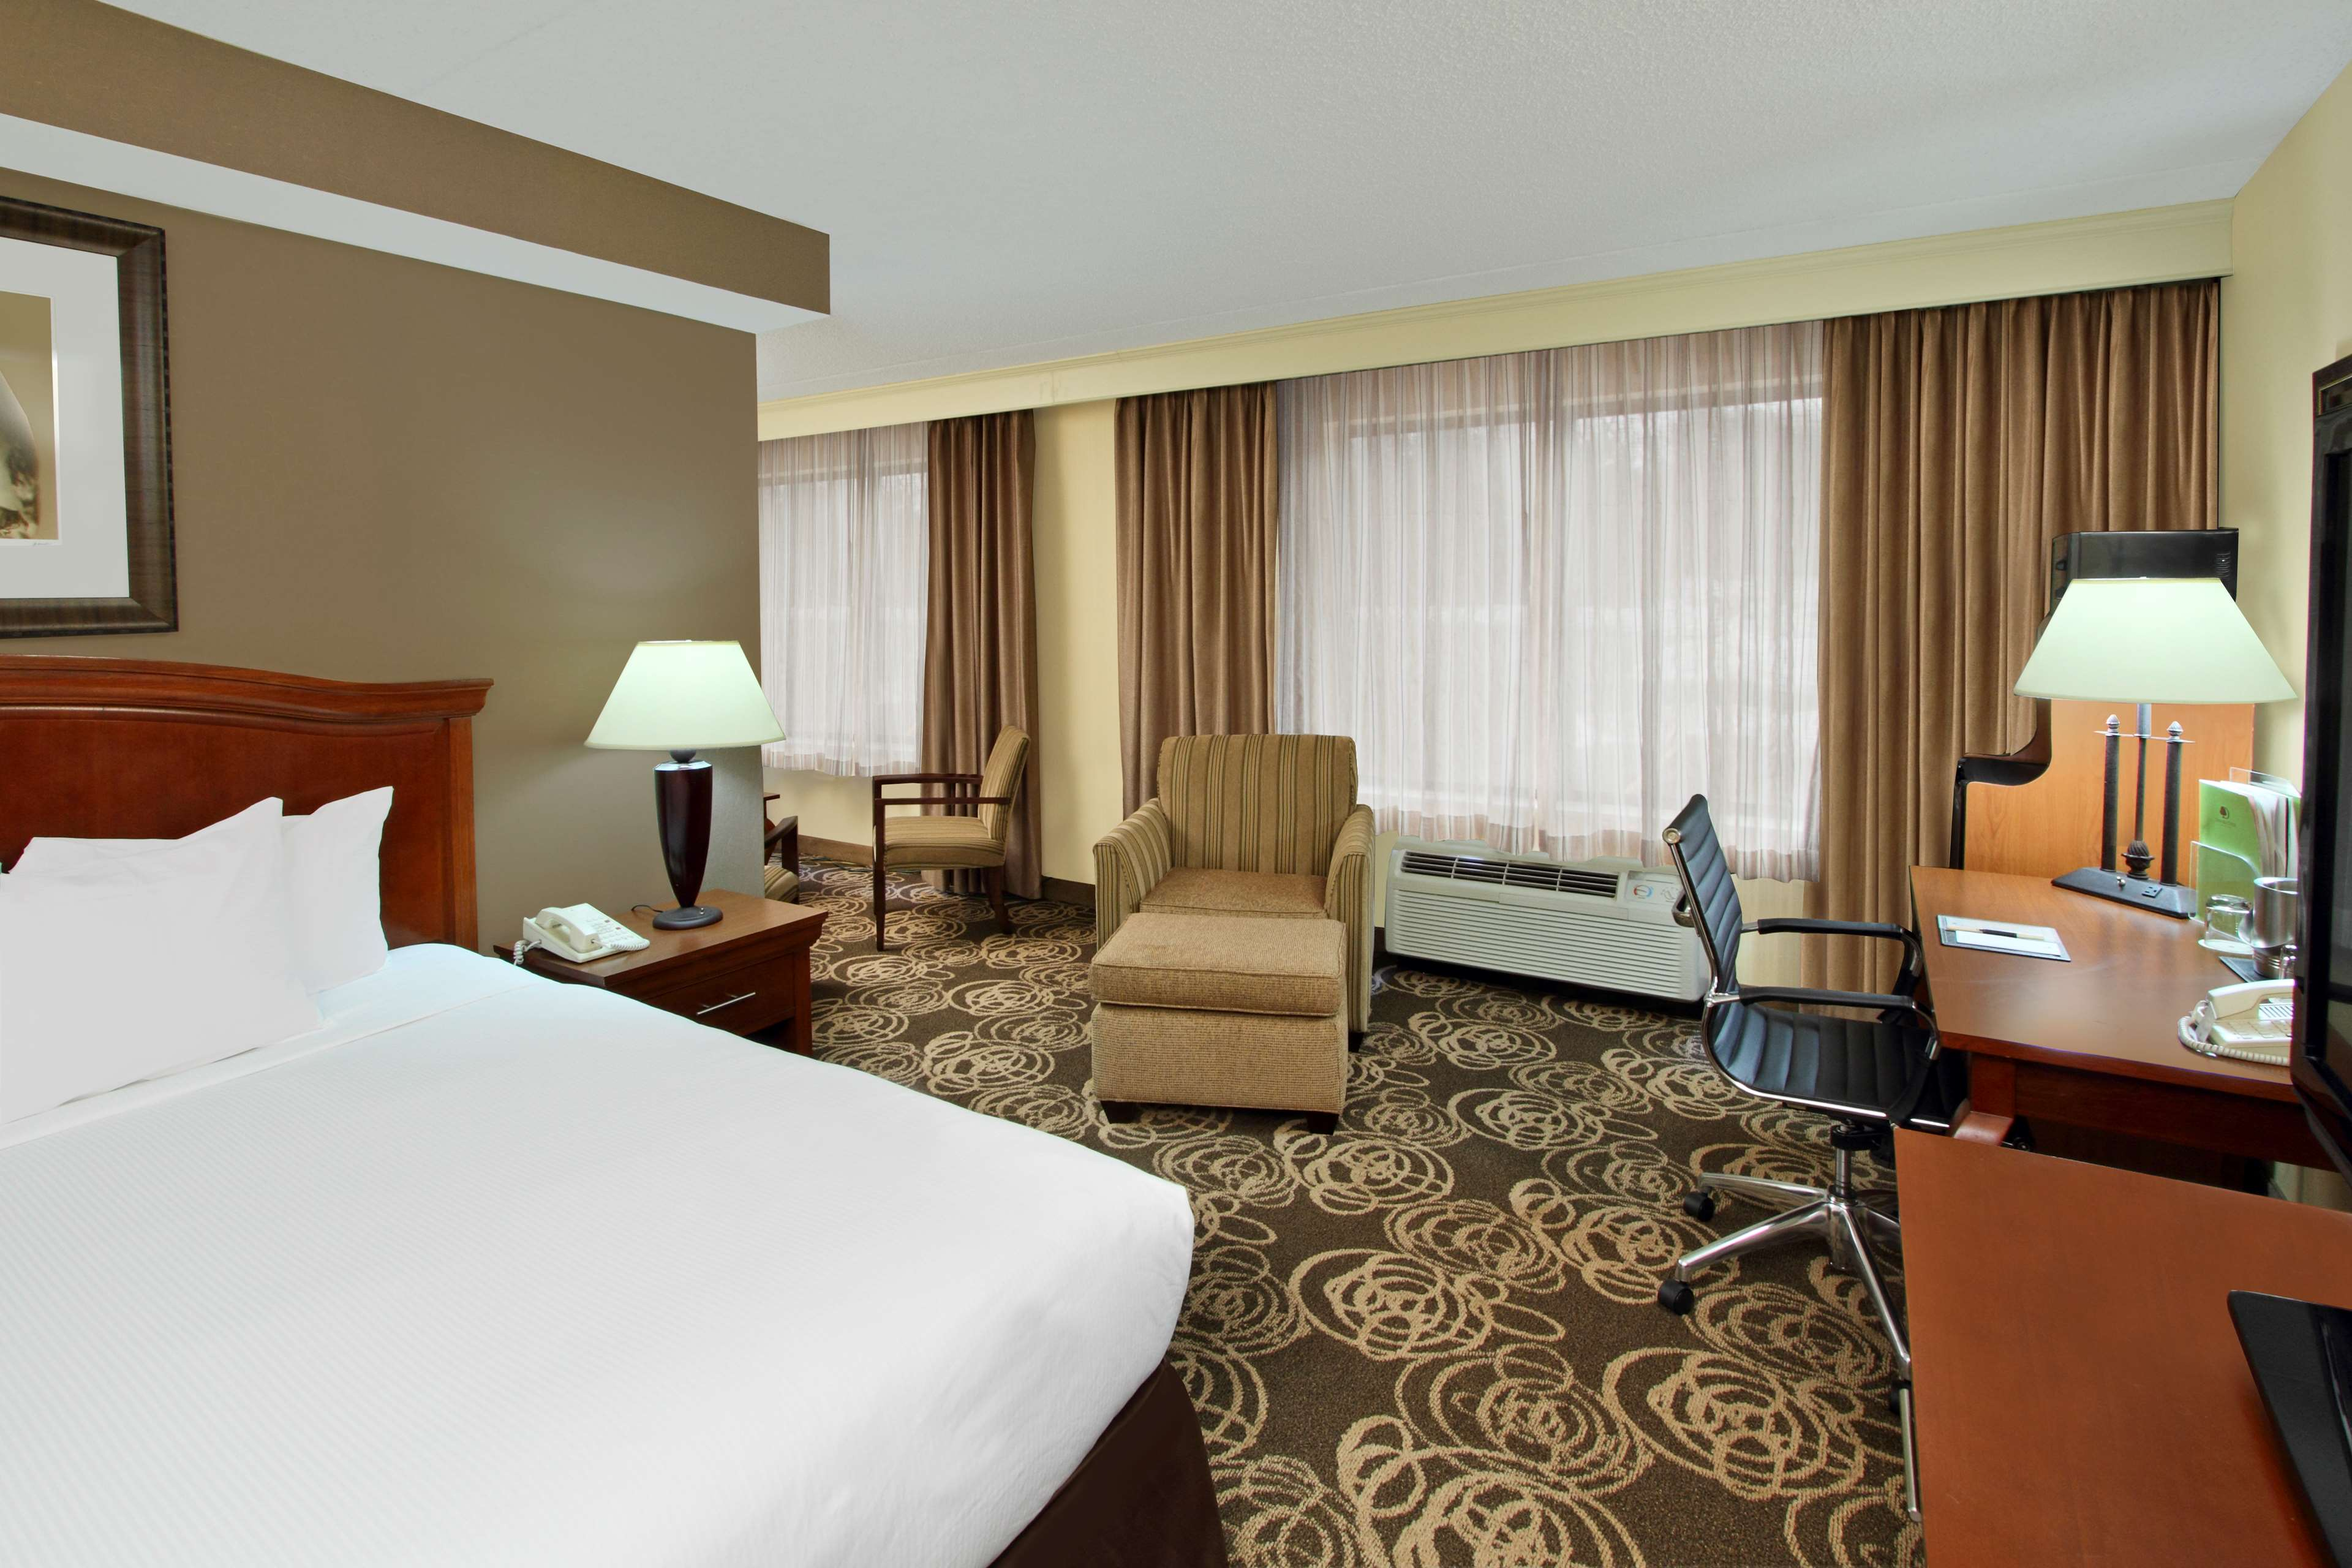 DoubleTree by Hilton Hotel Mahwah image 14